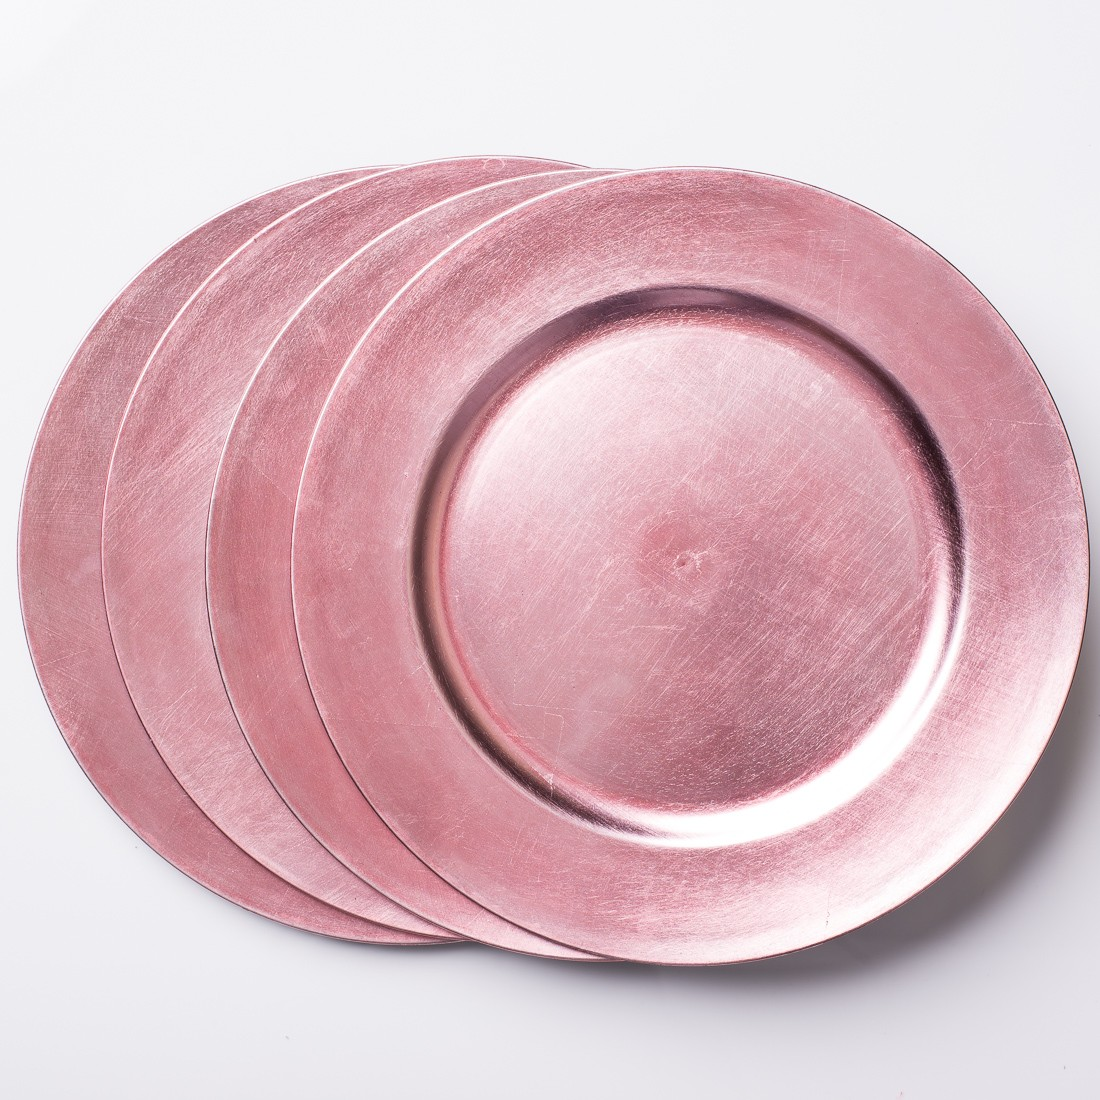 Astonishing Plate Chargers for Pretty Dinnerware Ideas: Disposable Charger Plates | Plate Chargers | Charge Plate